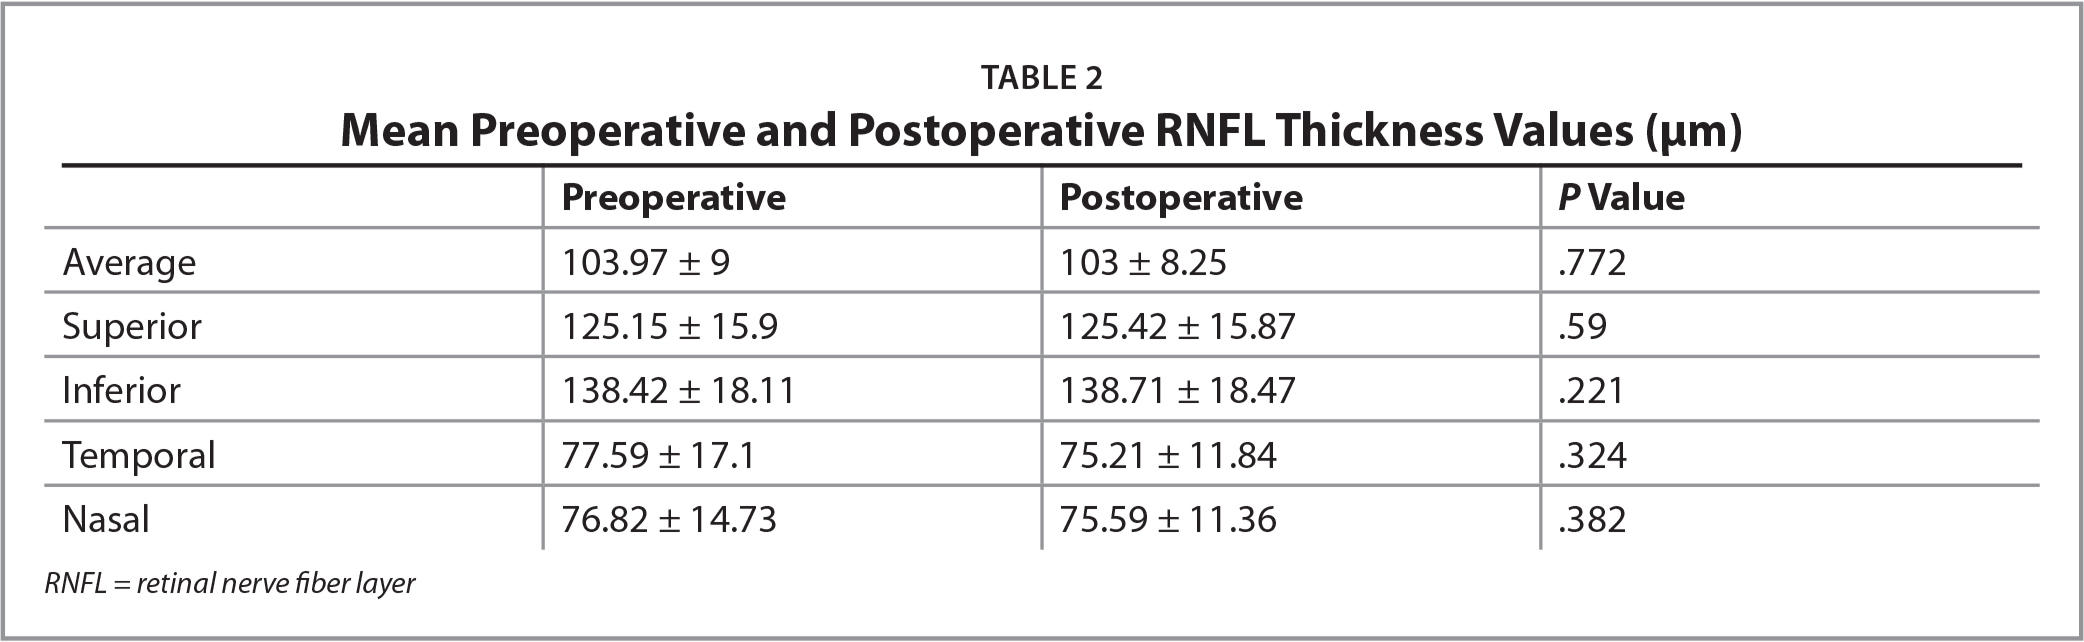 Mean Preoperative and Postoperative RNFL Thickness Values (μm)